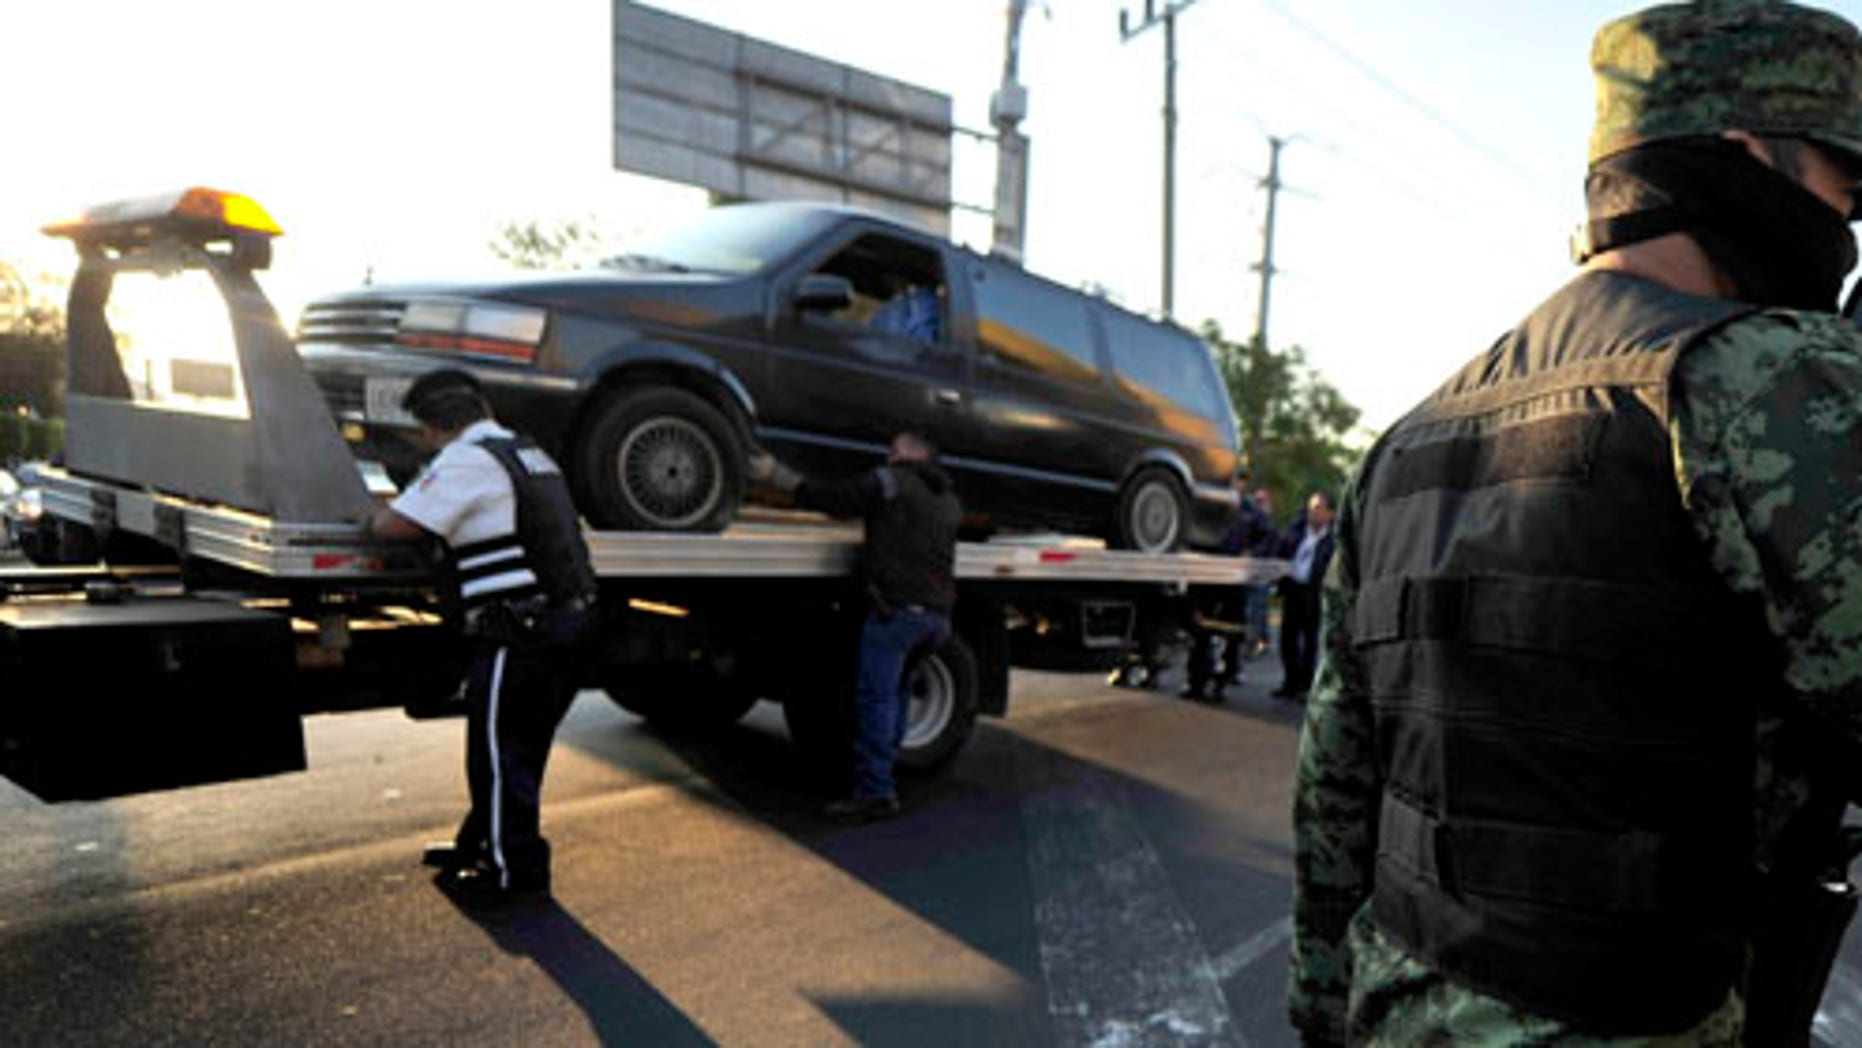 A soldier patrols as a vehicle that was discovered carrying bodies inside is taken away in Guadalajara, Mexico, Thursday Nov. 24, 2011.  At least 20 bodies were discovered early Thursday in three vehicles abandoned in the heart of Guadalajara, Mexico's second-largest city and the site of the recent Pan American Games, according to an official with the prosecutor's office in the state of Jalisco. (AP Photo/Victor Fernandez)